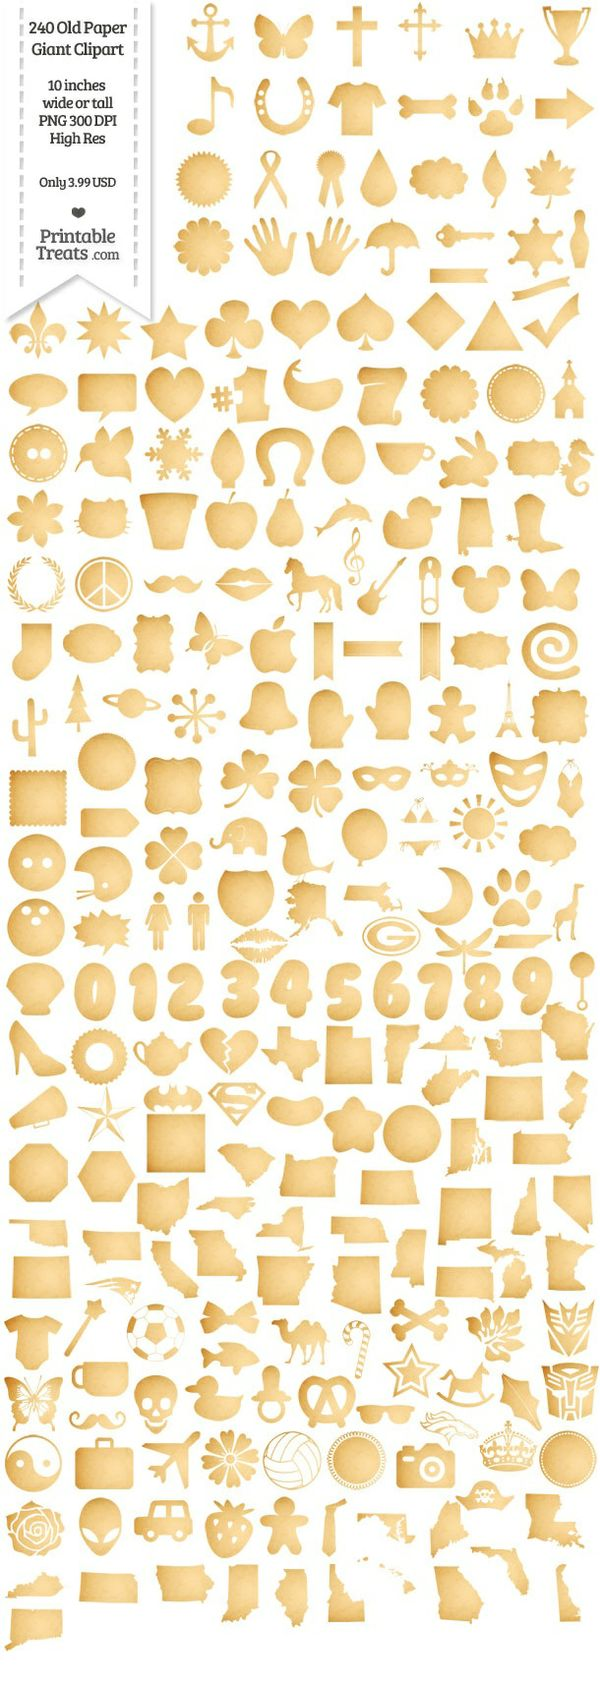 240 Old Paper Giant Clipart Password